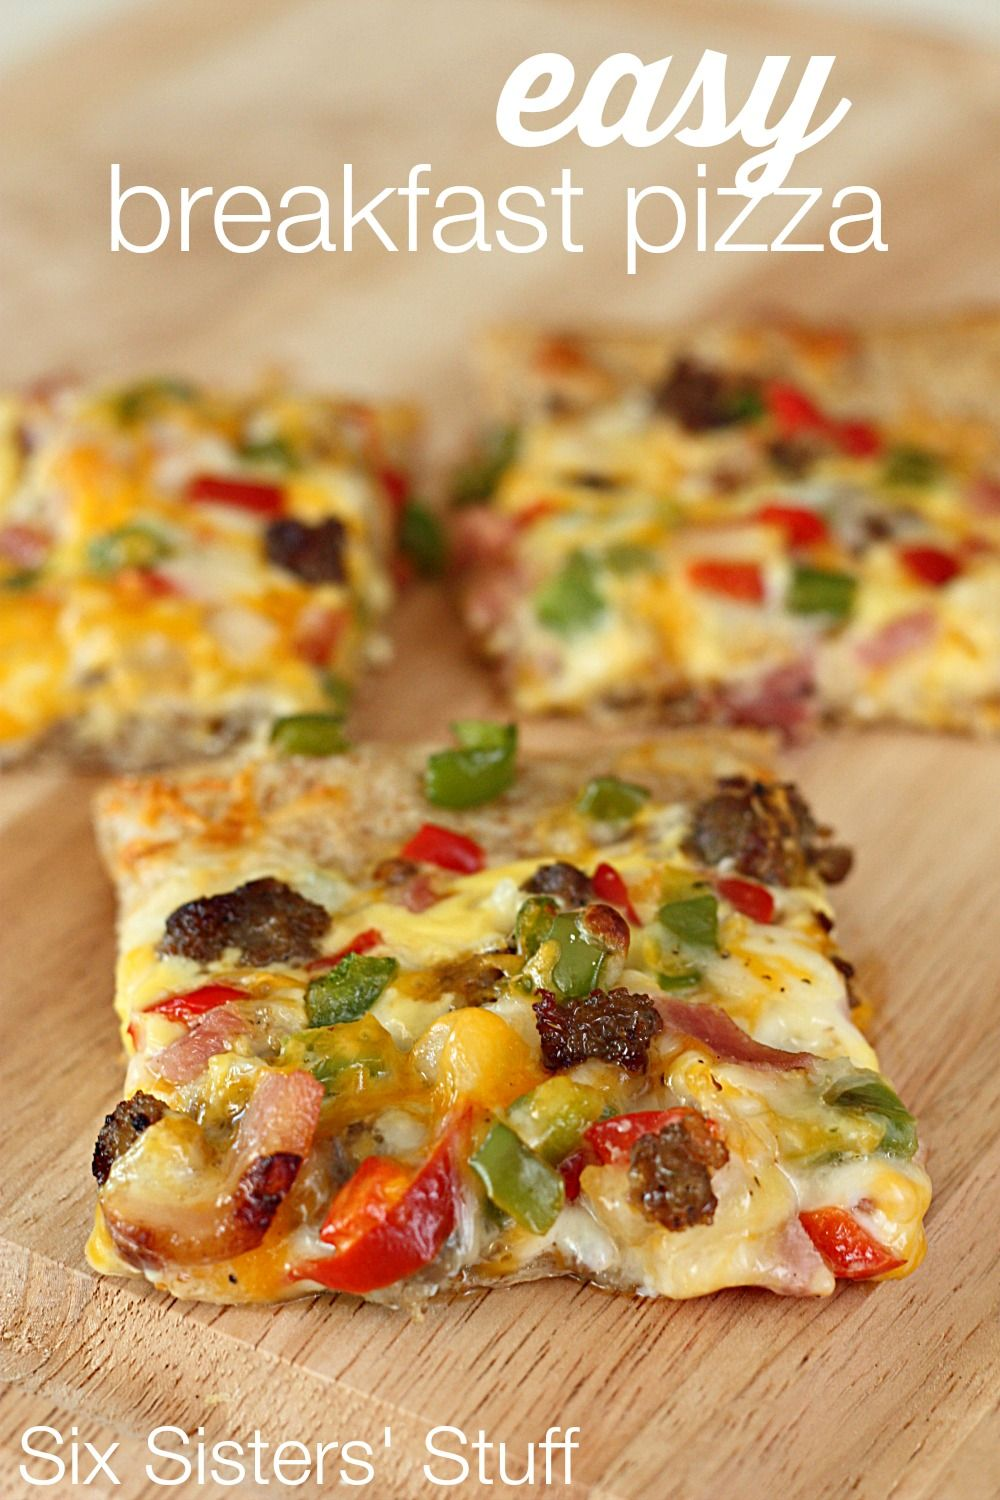 Easy Breakfast Pizza Recipe From Six Sisters' Stuff Is A